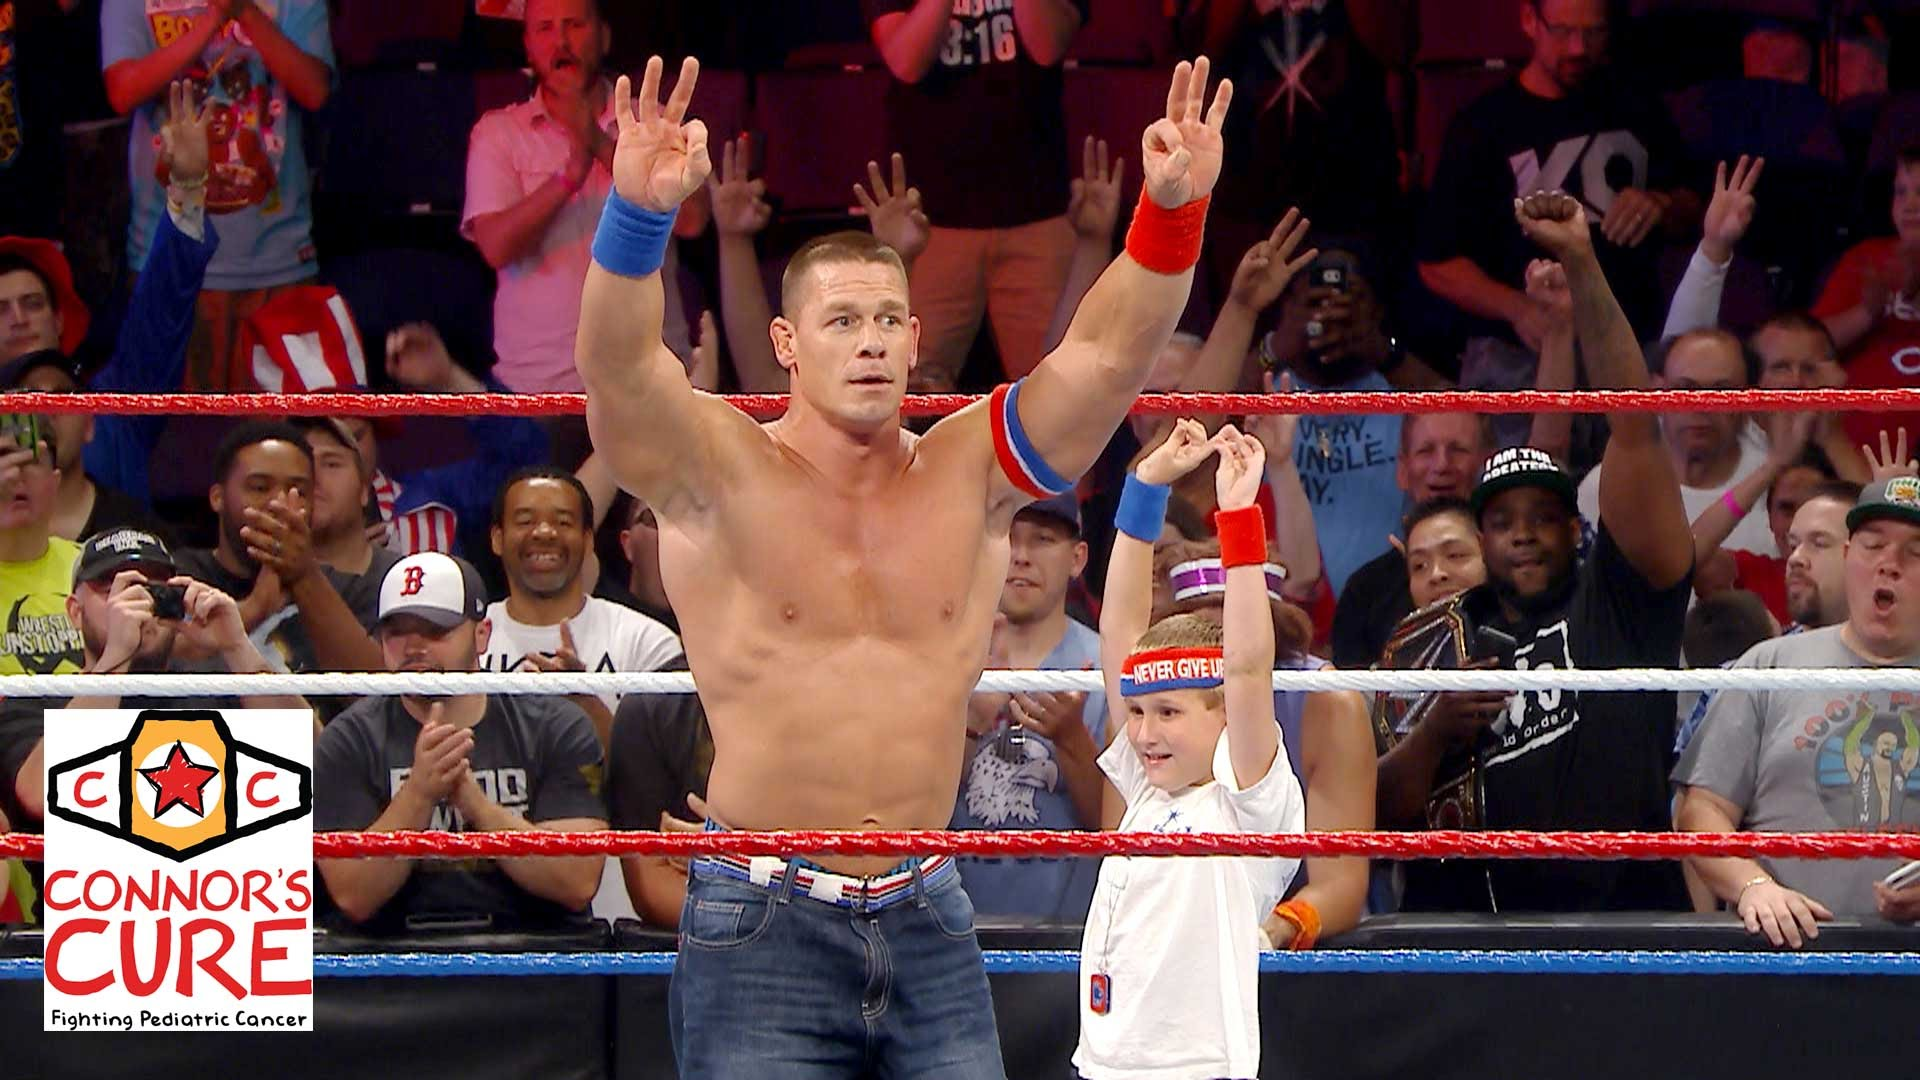 John Cena brings a young fan who beat cancer into the WWE ring